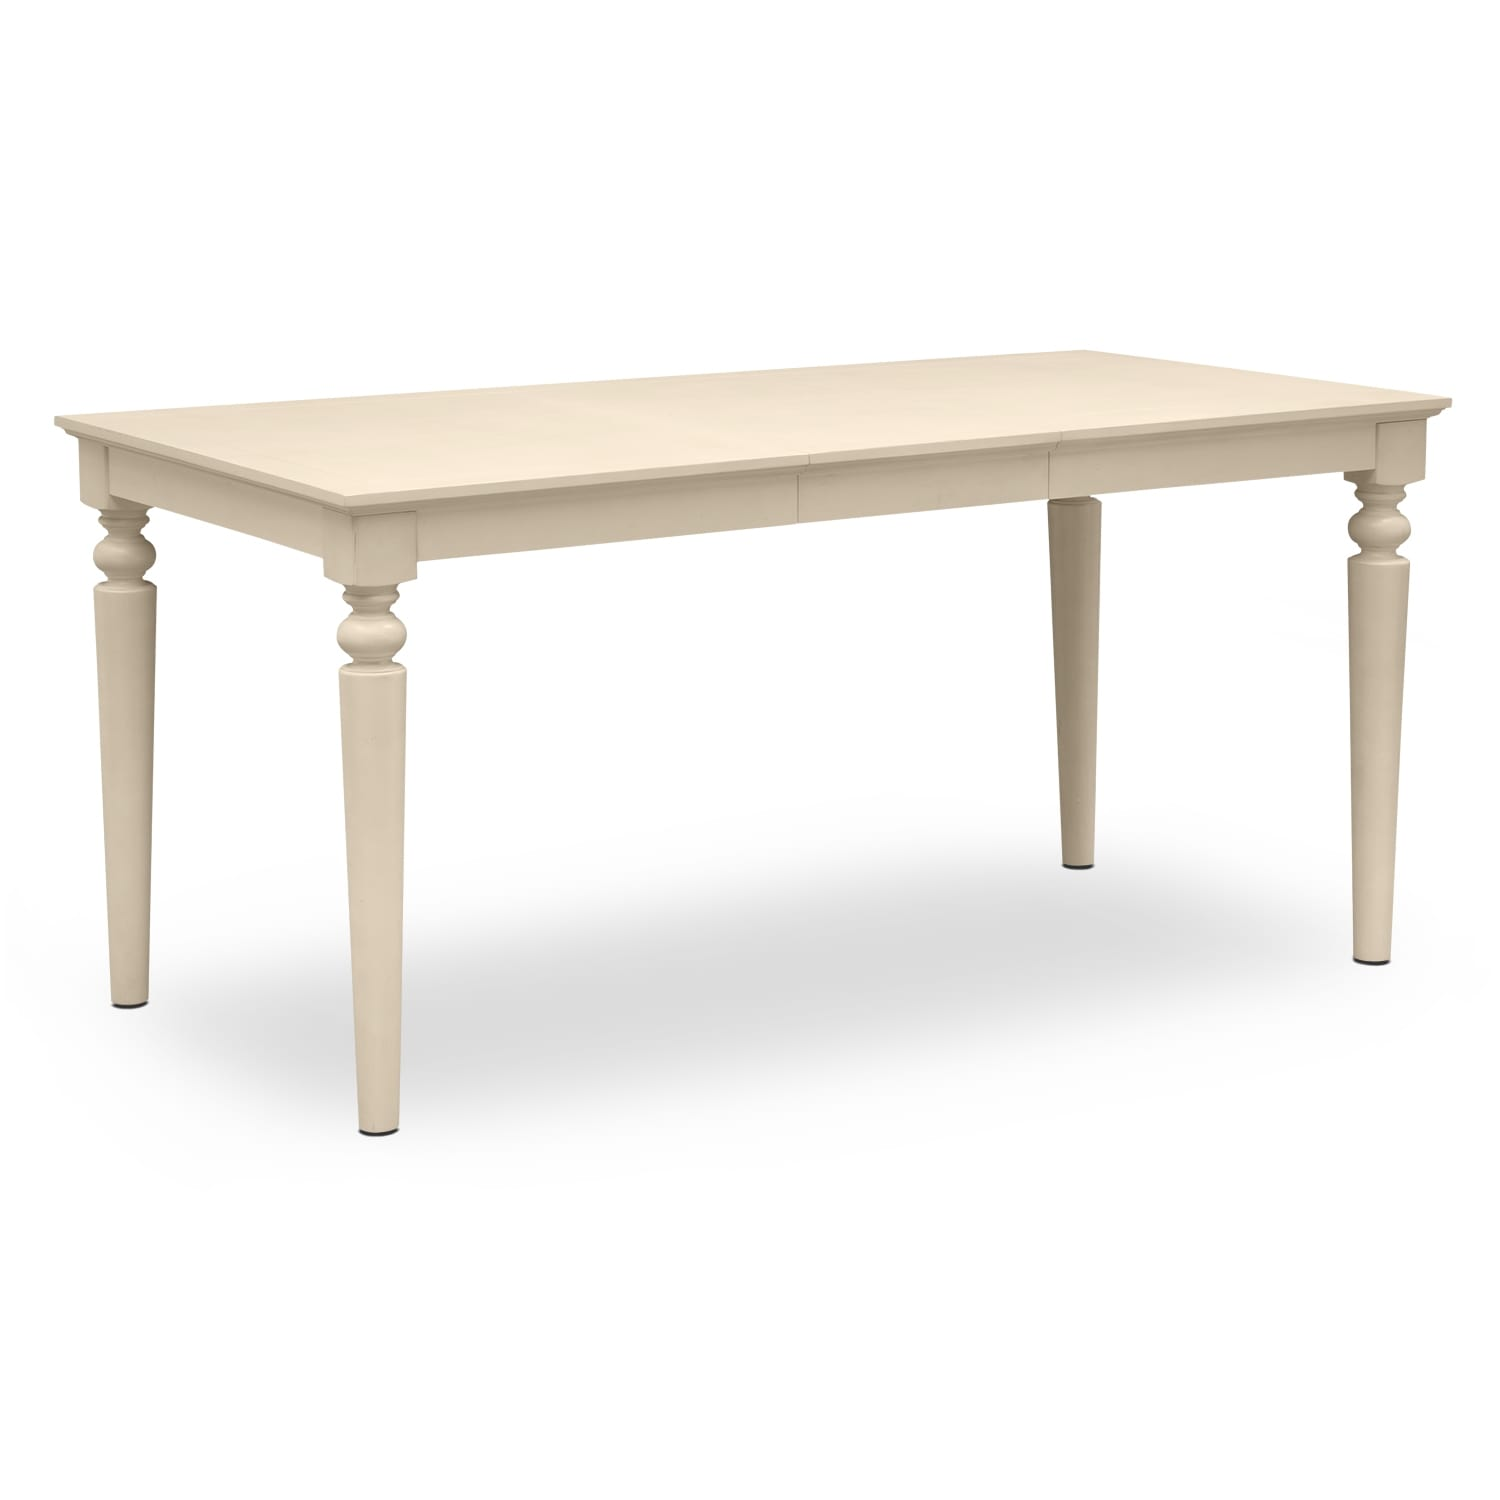 Carnival White II Dining Room Counter Height Table Value  : 294663 from valuecity.com size 1500 x 1500 jpeg 165kB